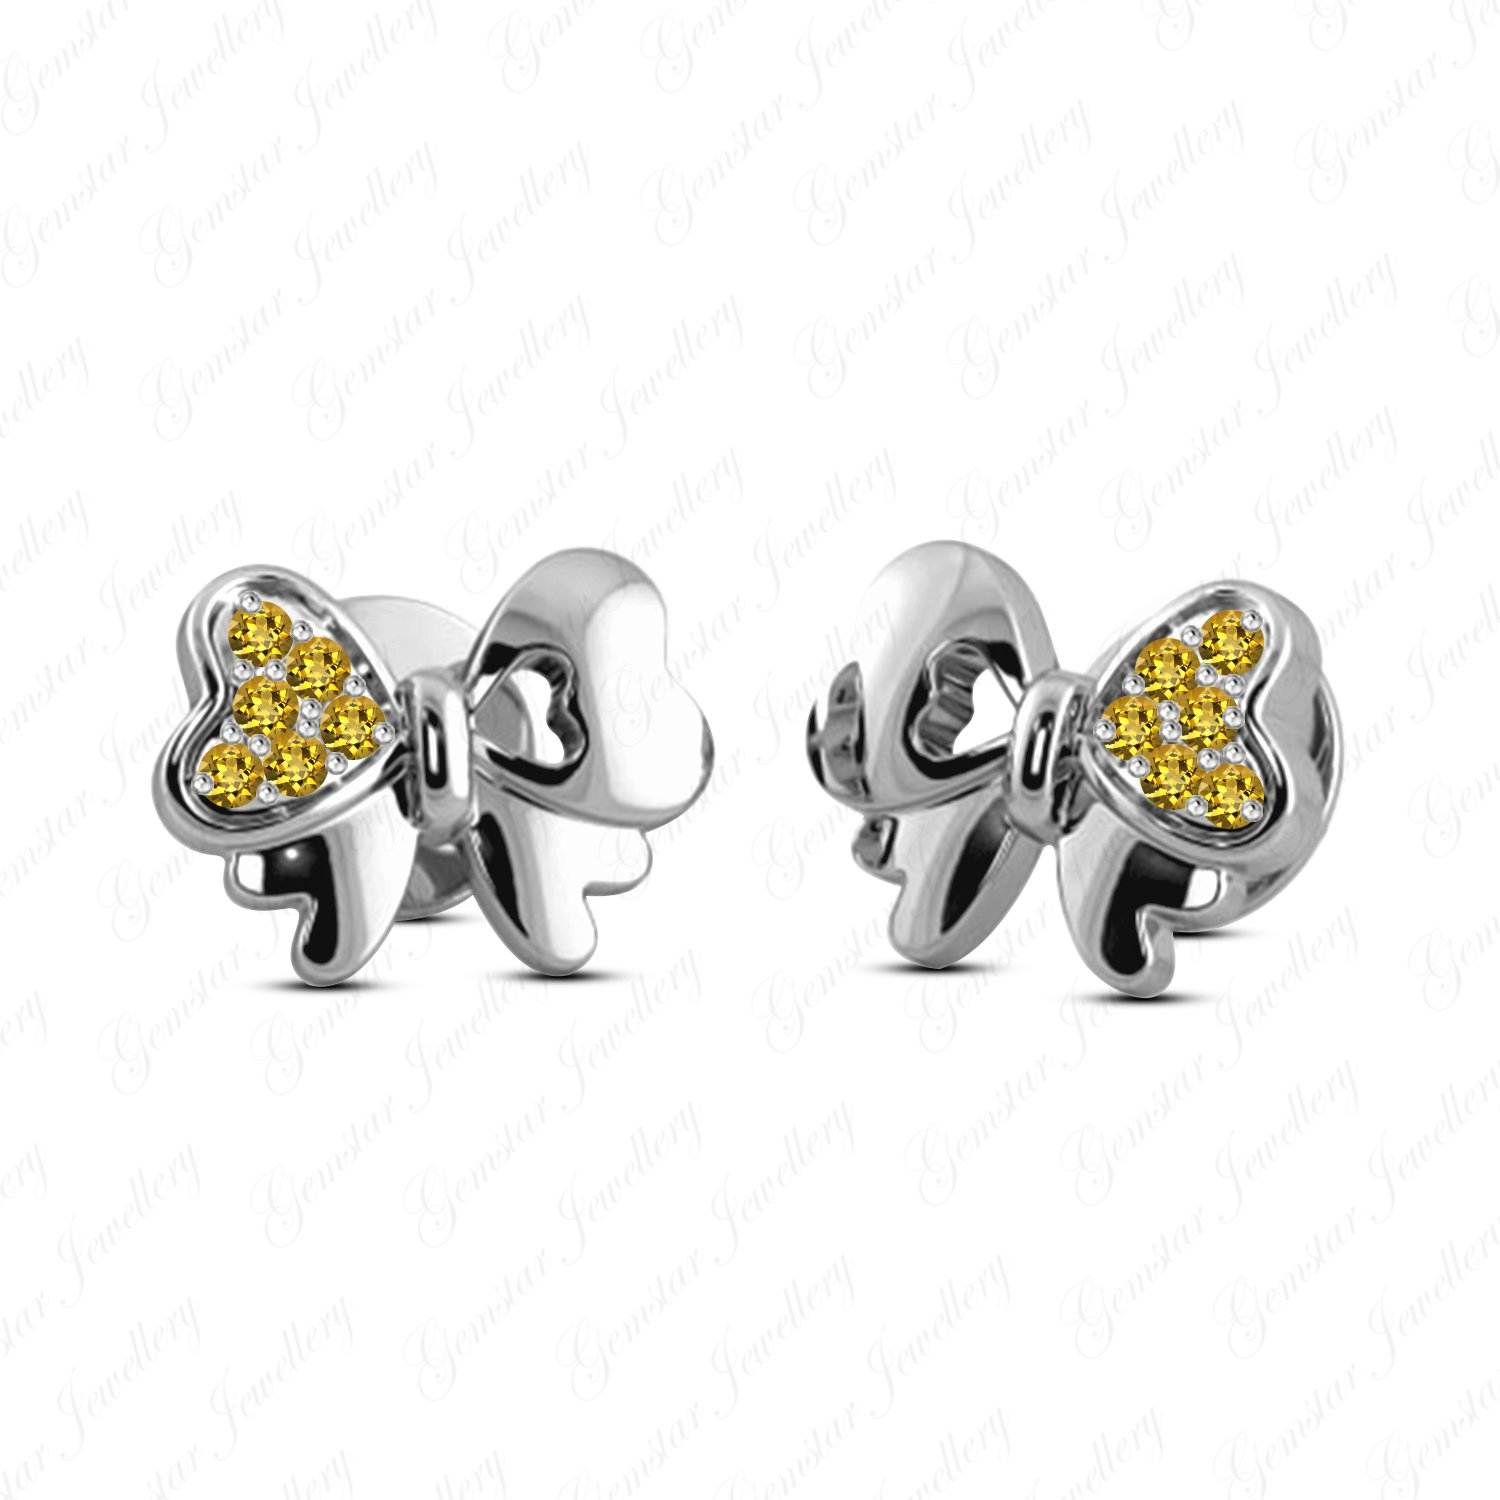 Gemstar Jewellery Girls Stud Minnie Mouse Bow Earrings In 14k White Gold Over 925 Silver Yellow Citrine